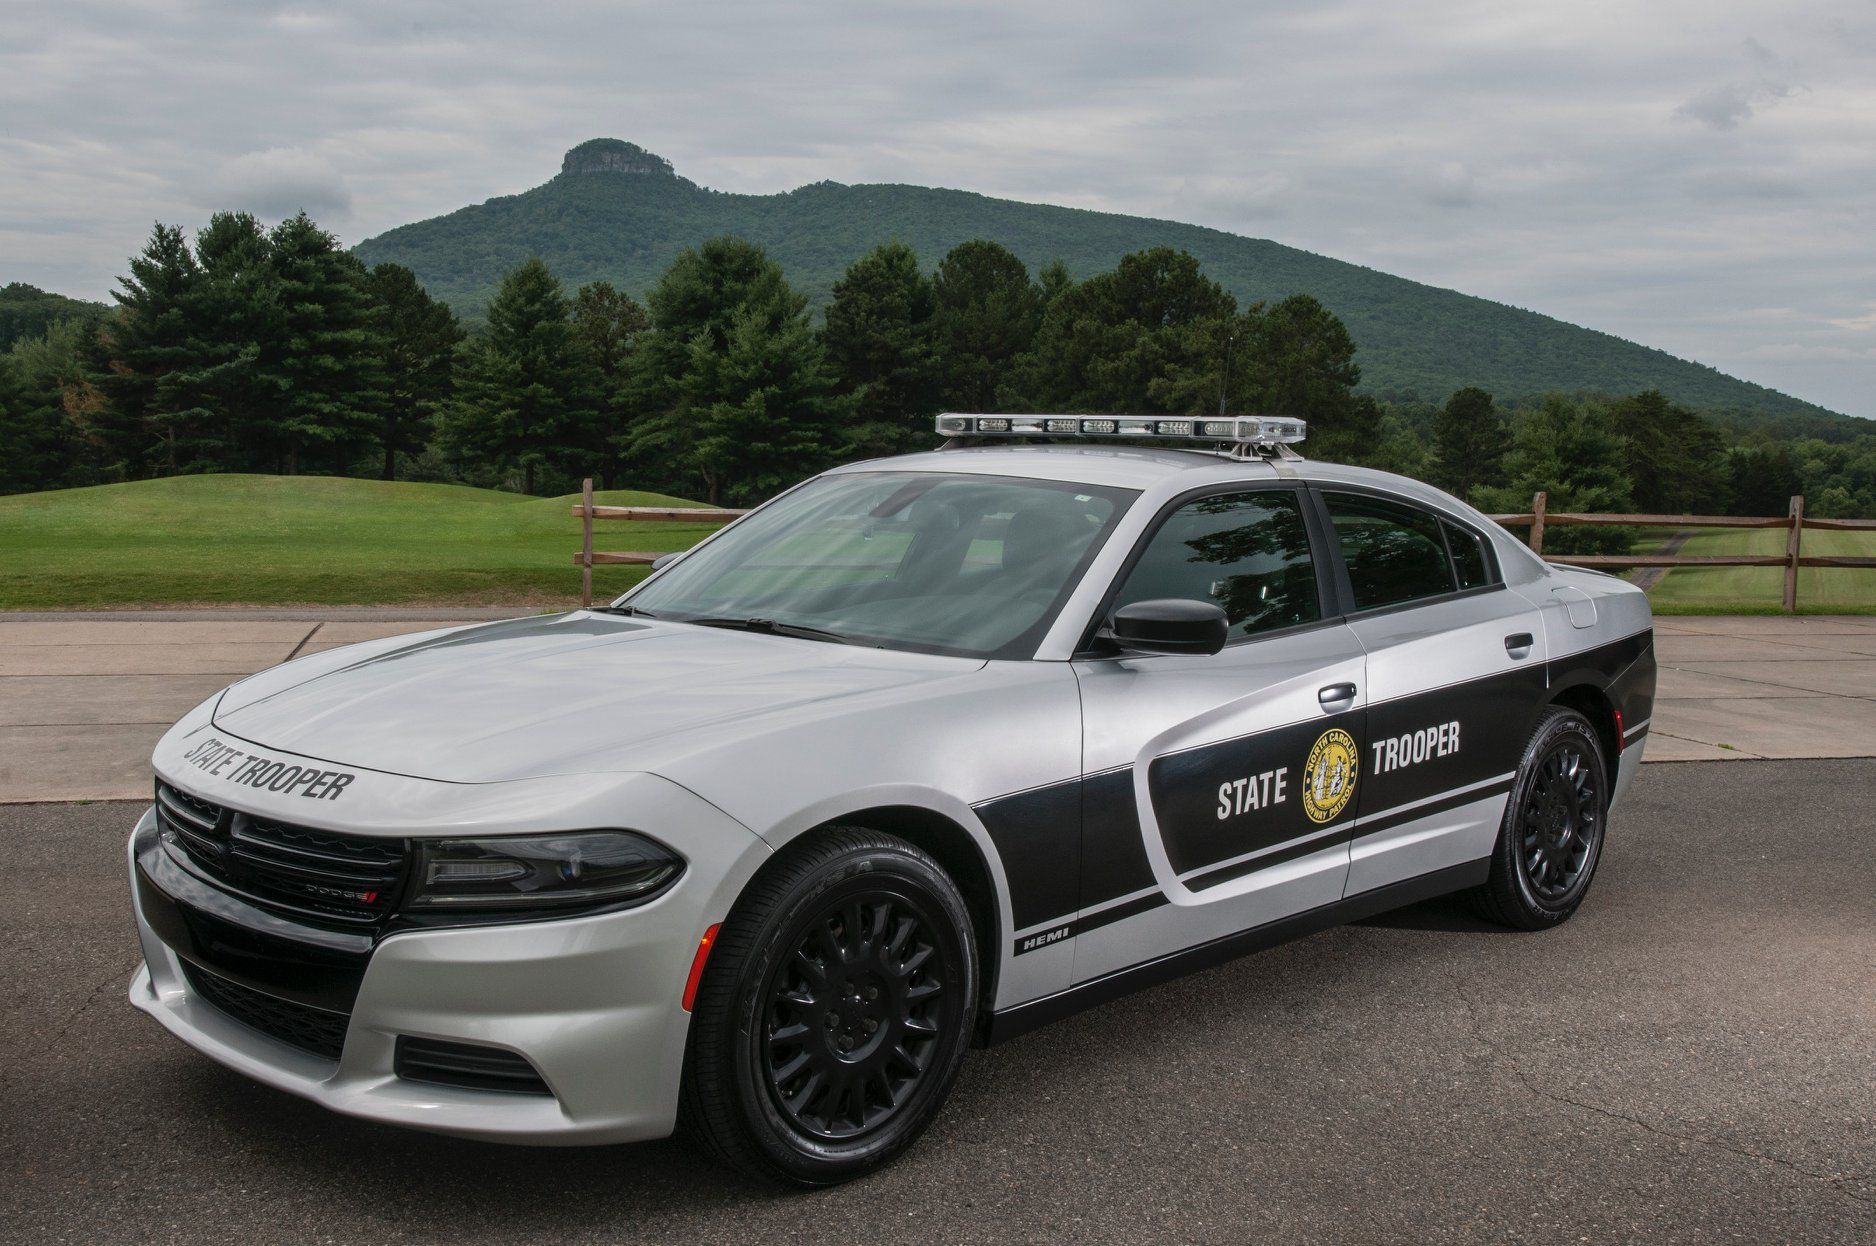 Highway Patrol Participating In Nationwide Best Looking Cruiser Contest Police Cars North Carolina Highway Patrol Us Police Car